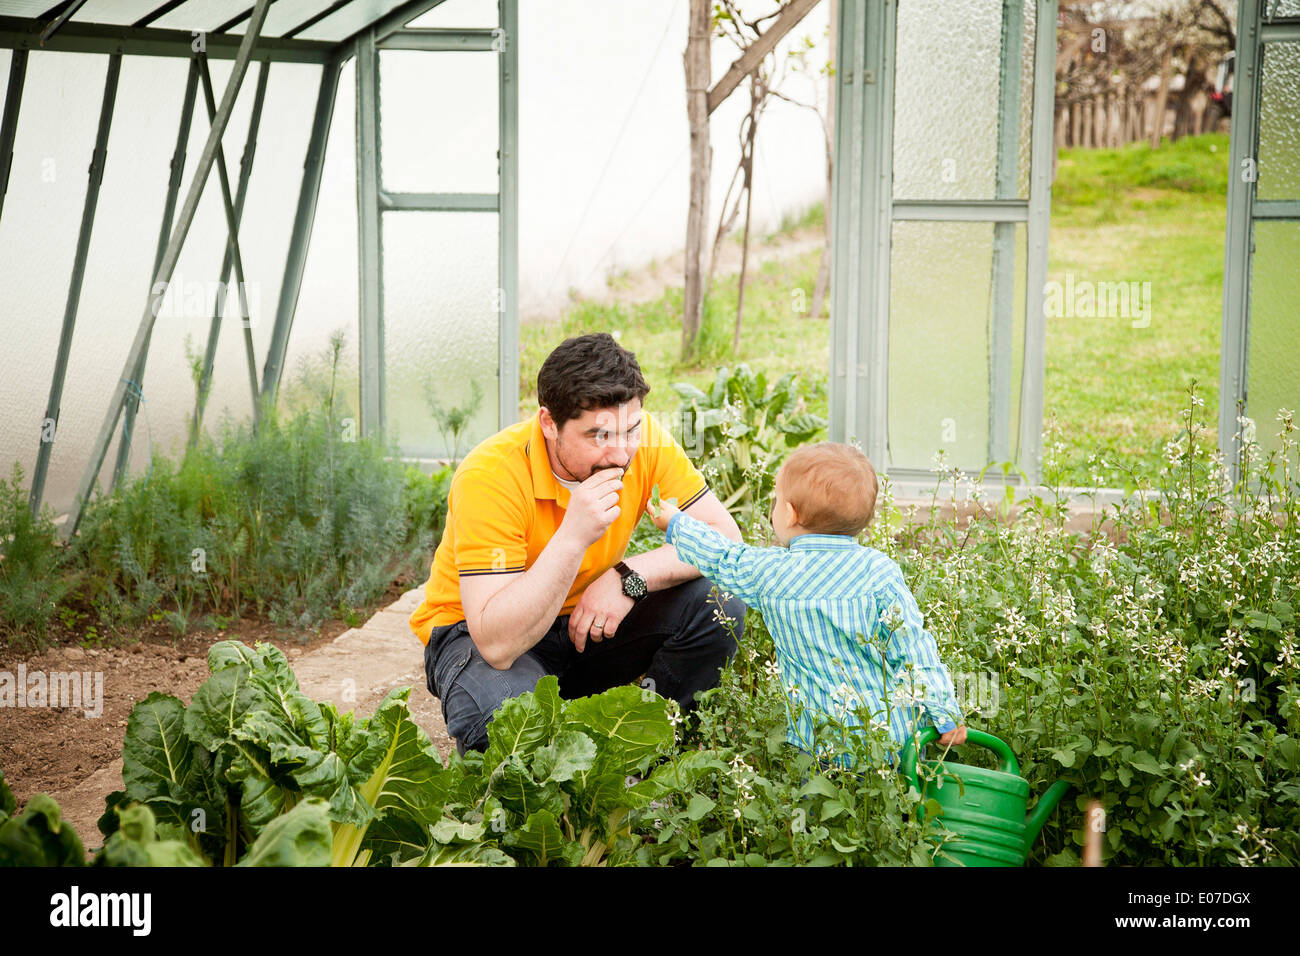 Father and son in vegetable garden, Austria - Stock Image